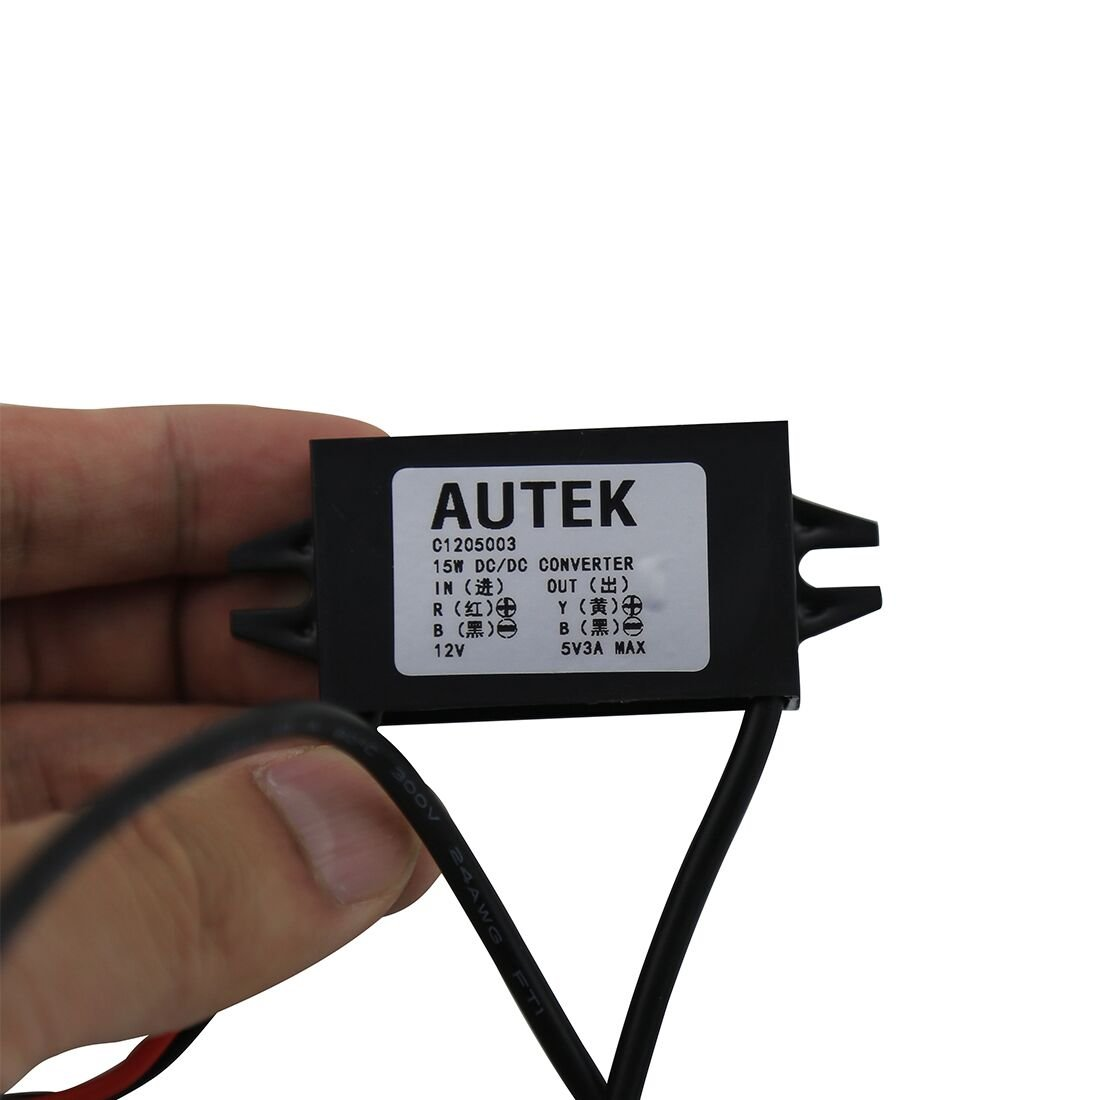 Autek Dc Converter Buck Module 12v Convert To 5v Usb 3a Stepdown Switching Voltage Regulator Schematic With Lm2576t5v Output Power Adapterdccon 5u 0 Home Audio Theater